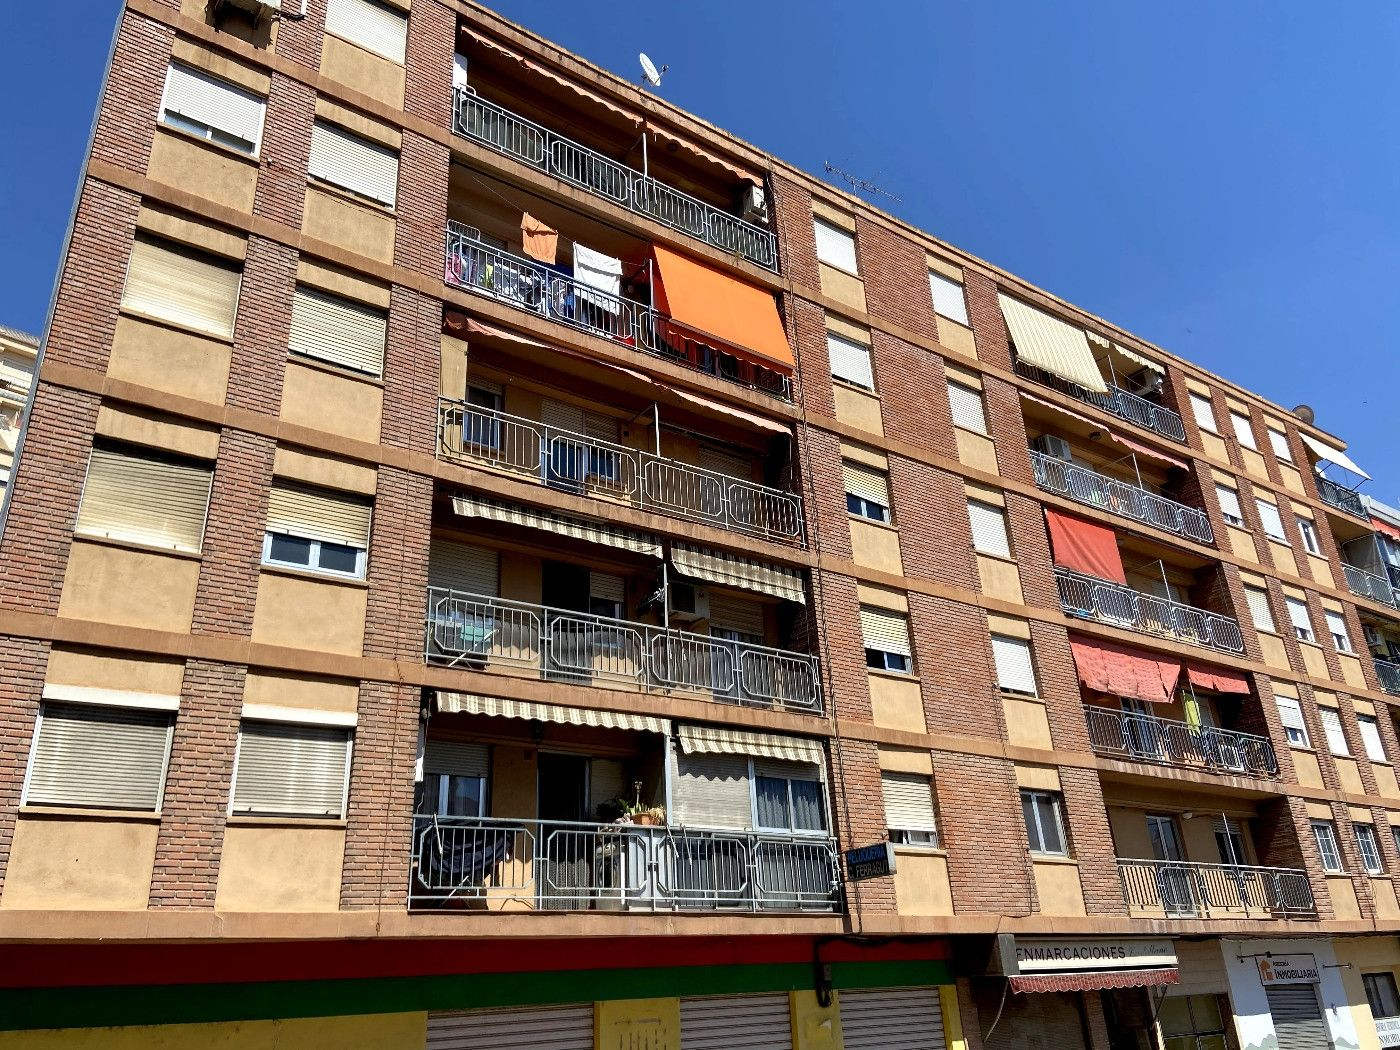 Appartamento  Calle ruiz pons. Piso financiado 100% negociable